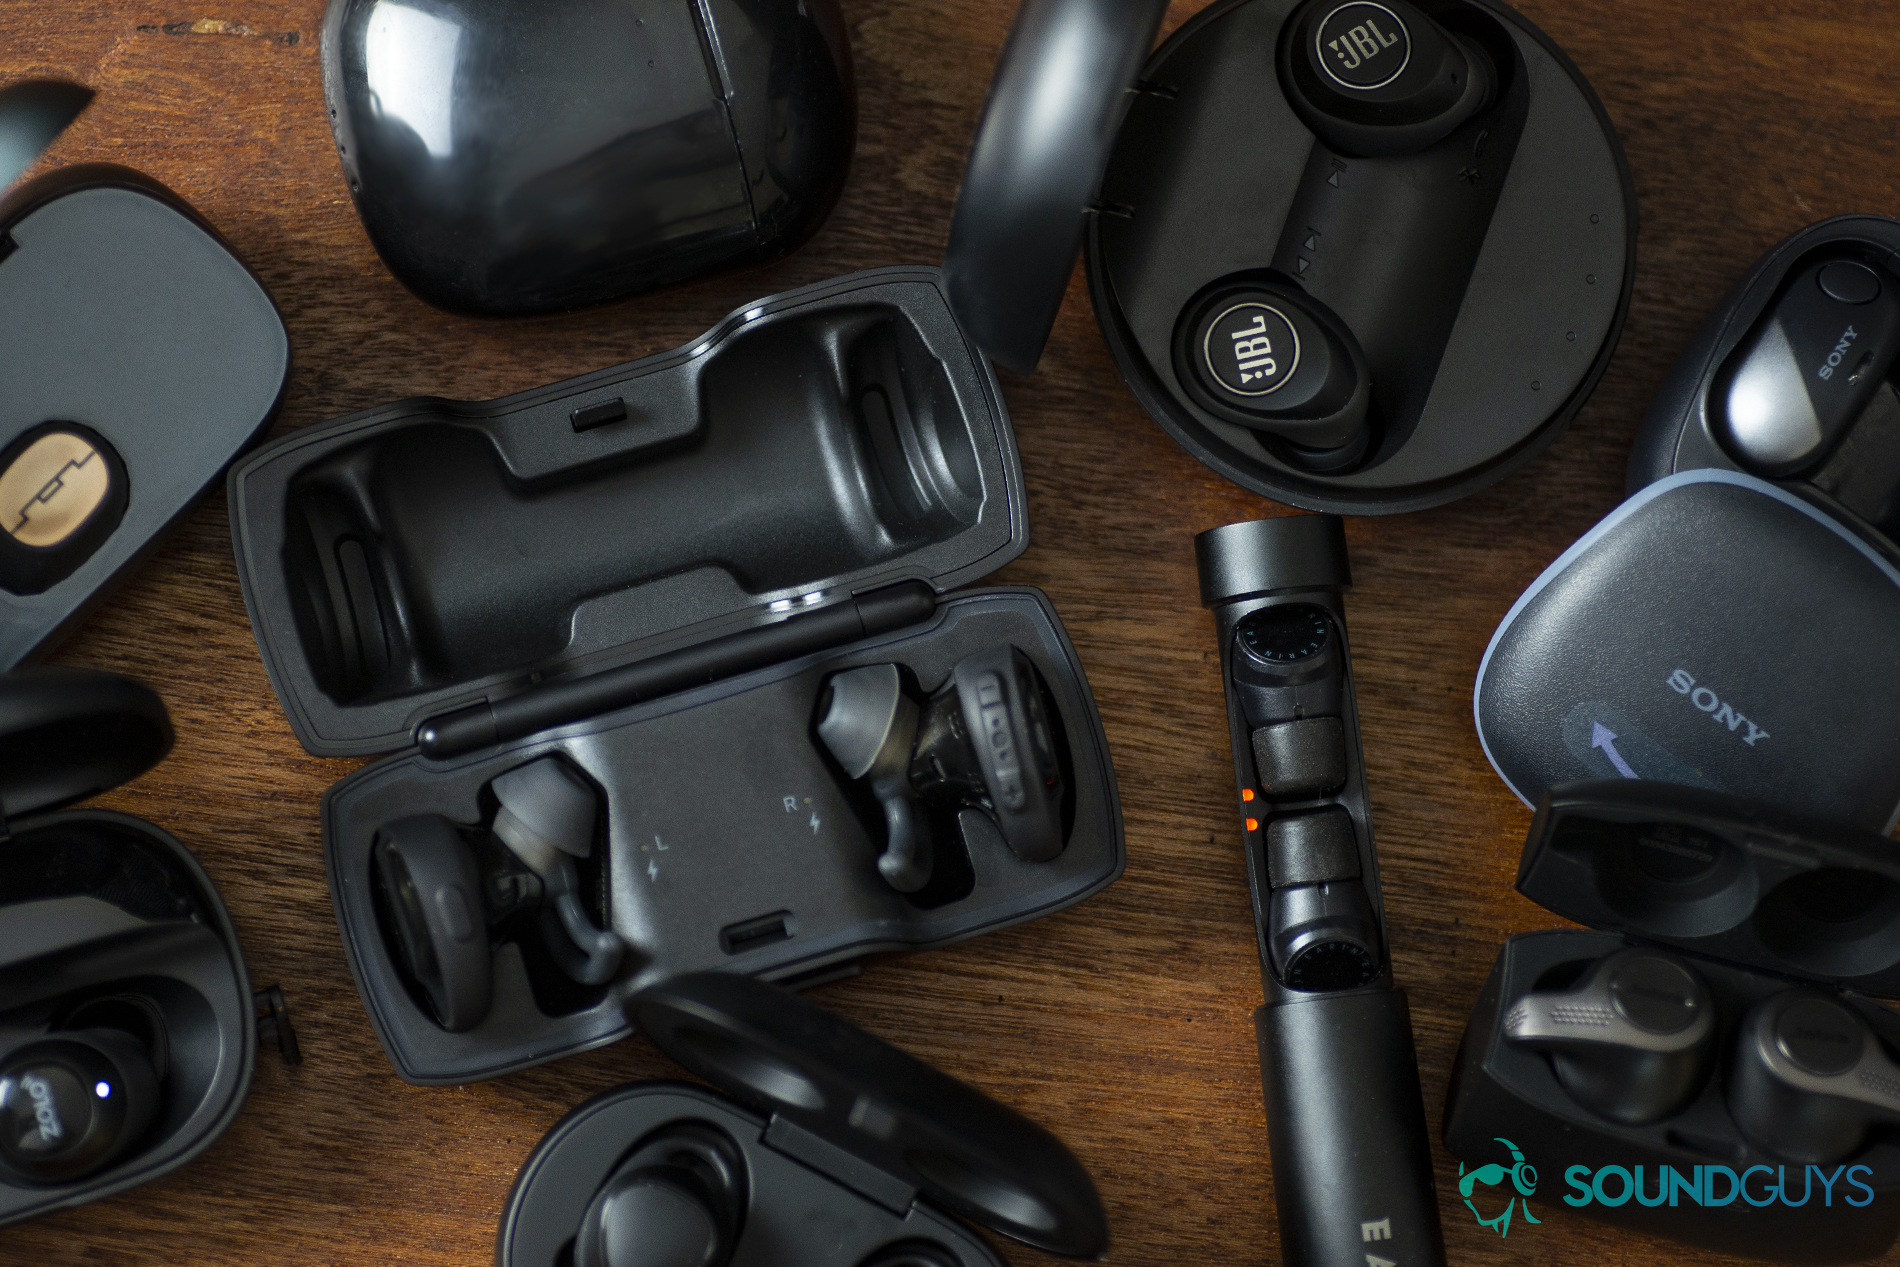 5da5cdd8658 Best true wireless earbuds of 2019 - SoundGuys